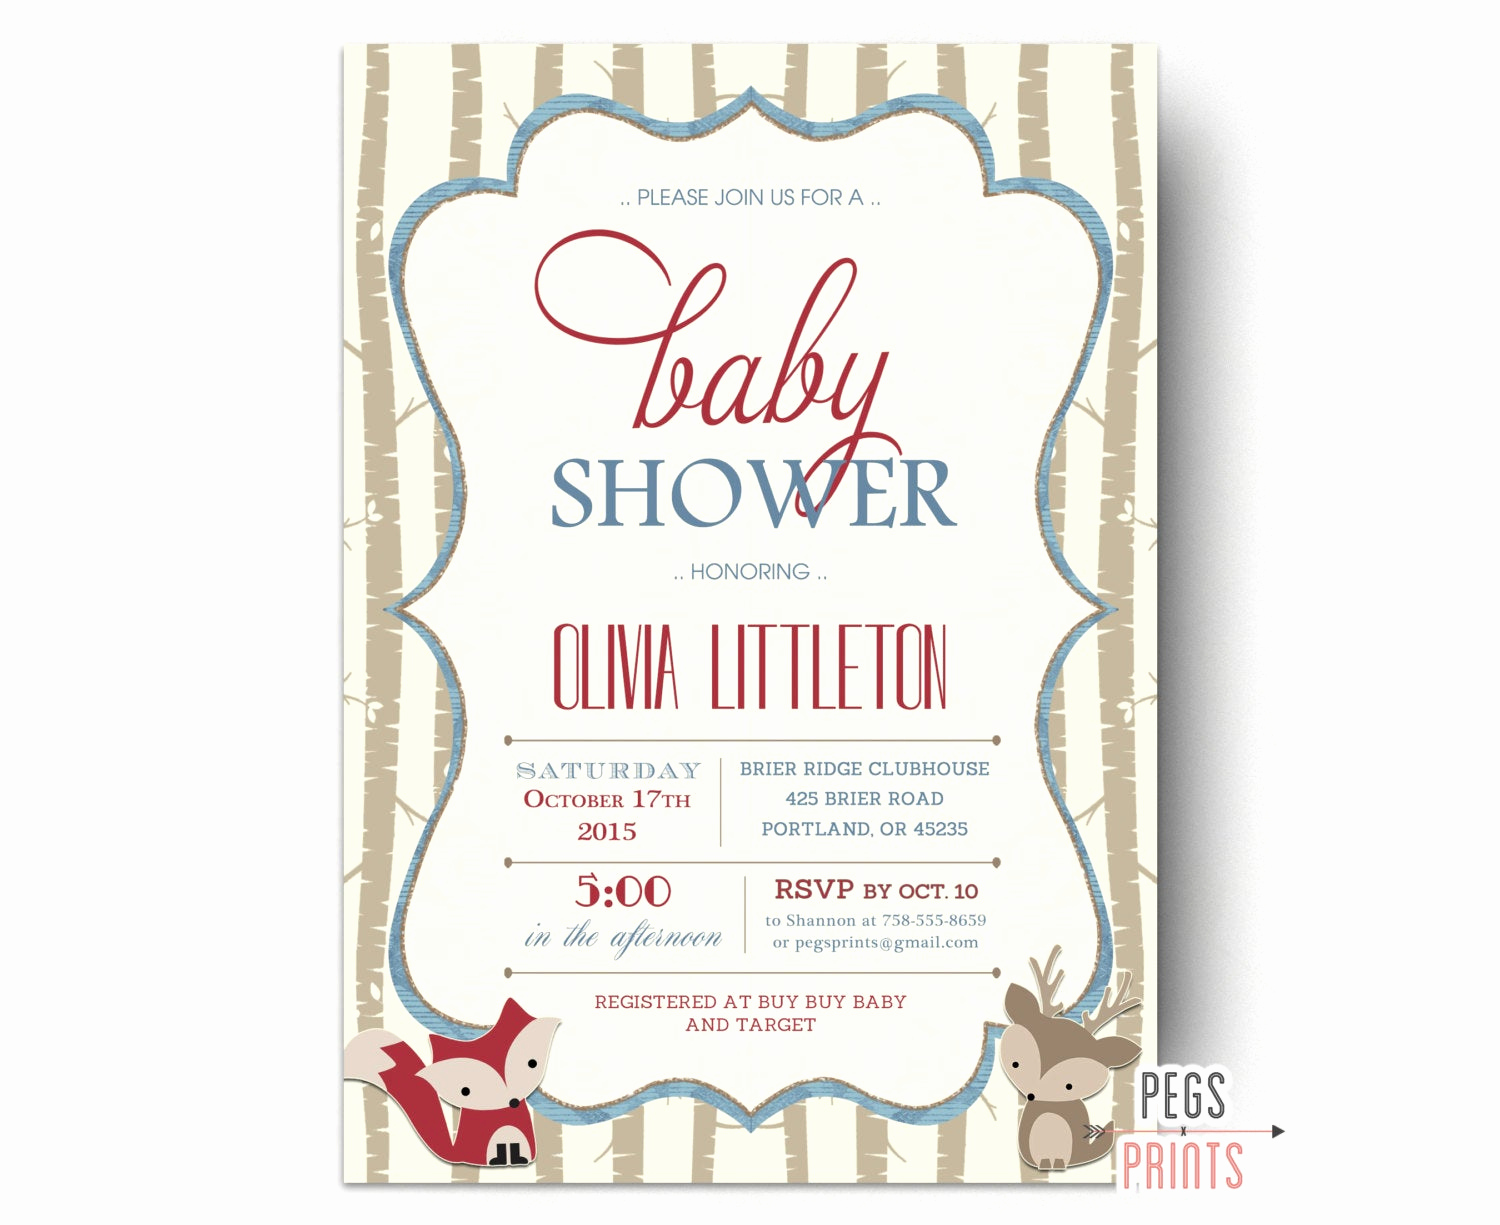 Woodland Baby Shower Invitation New Woodland Shower Invitation Woodland Baby Shower Invites